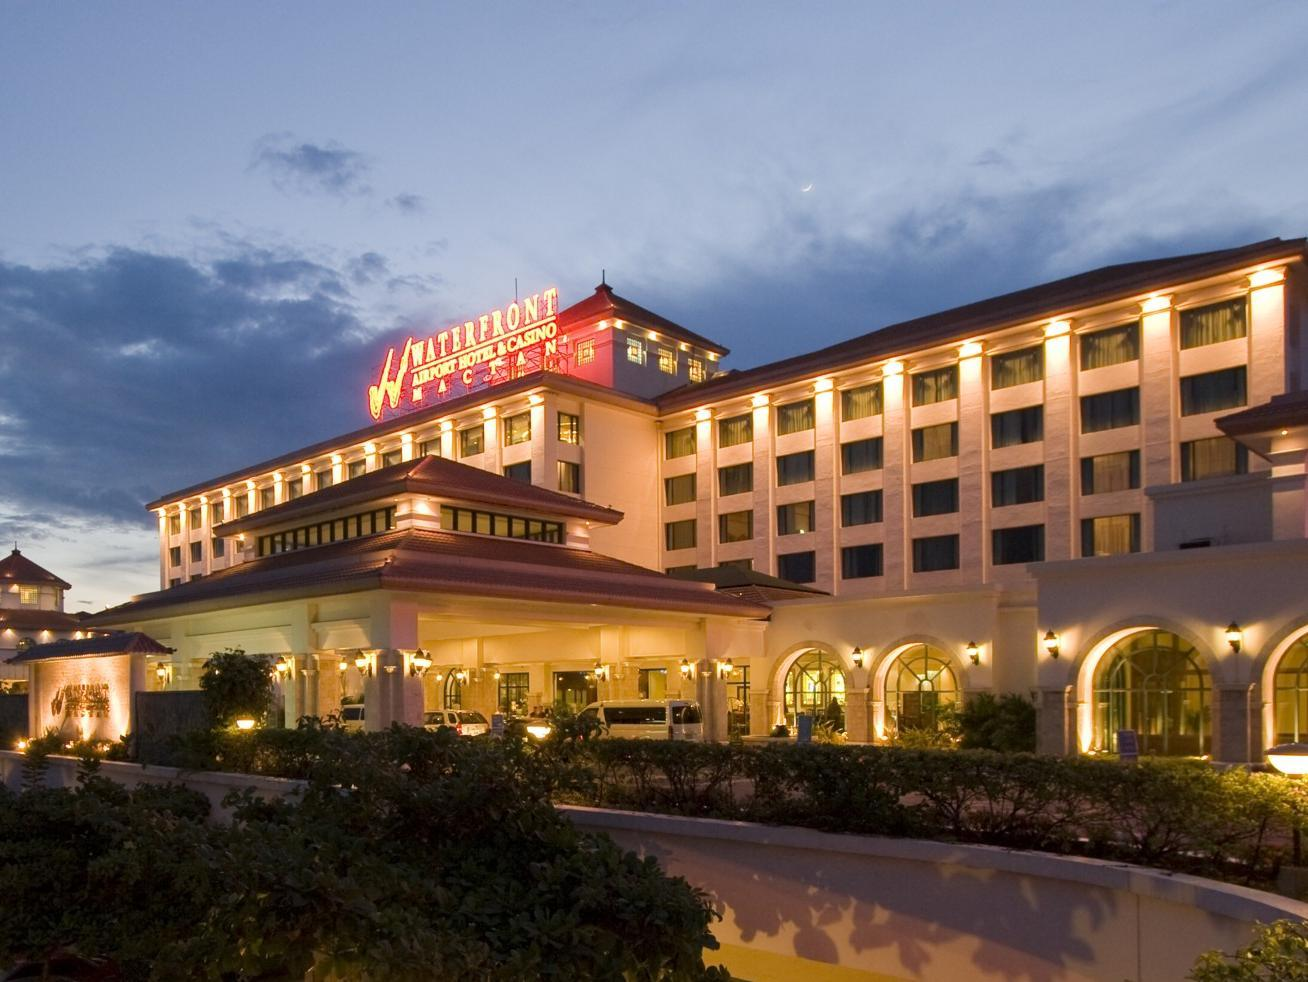 Waterfront Airport Hotel and Casino Cebu - Exterior de l'hotel